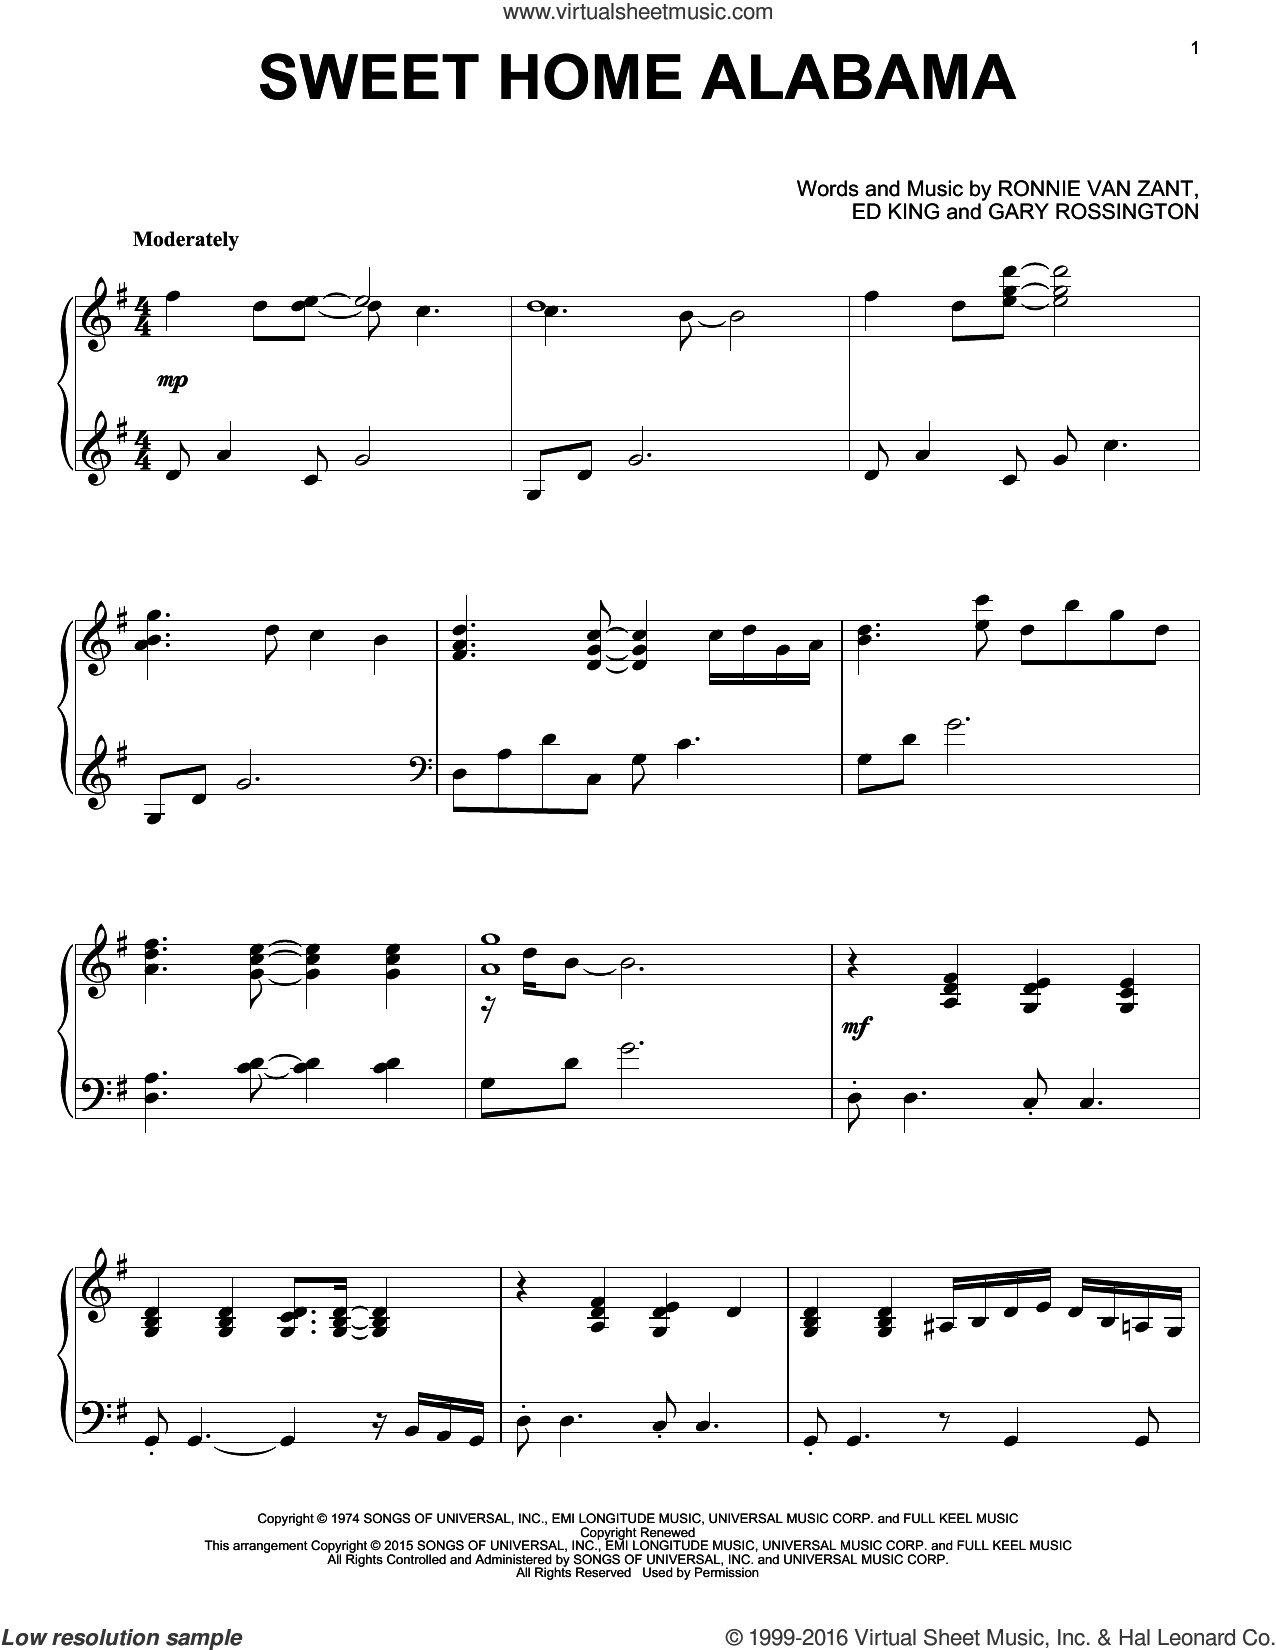 Sweet Home Alabama sheet music for piano solo by Lynyrd Skynyrd, Alabama, Edward King, Gary Rossington and Ronnie Van Zant, intermediate piano. Score Image Preview.